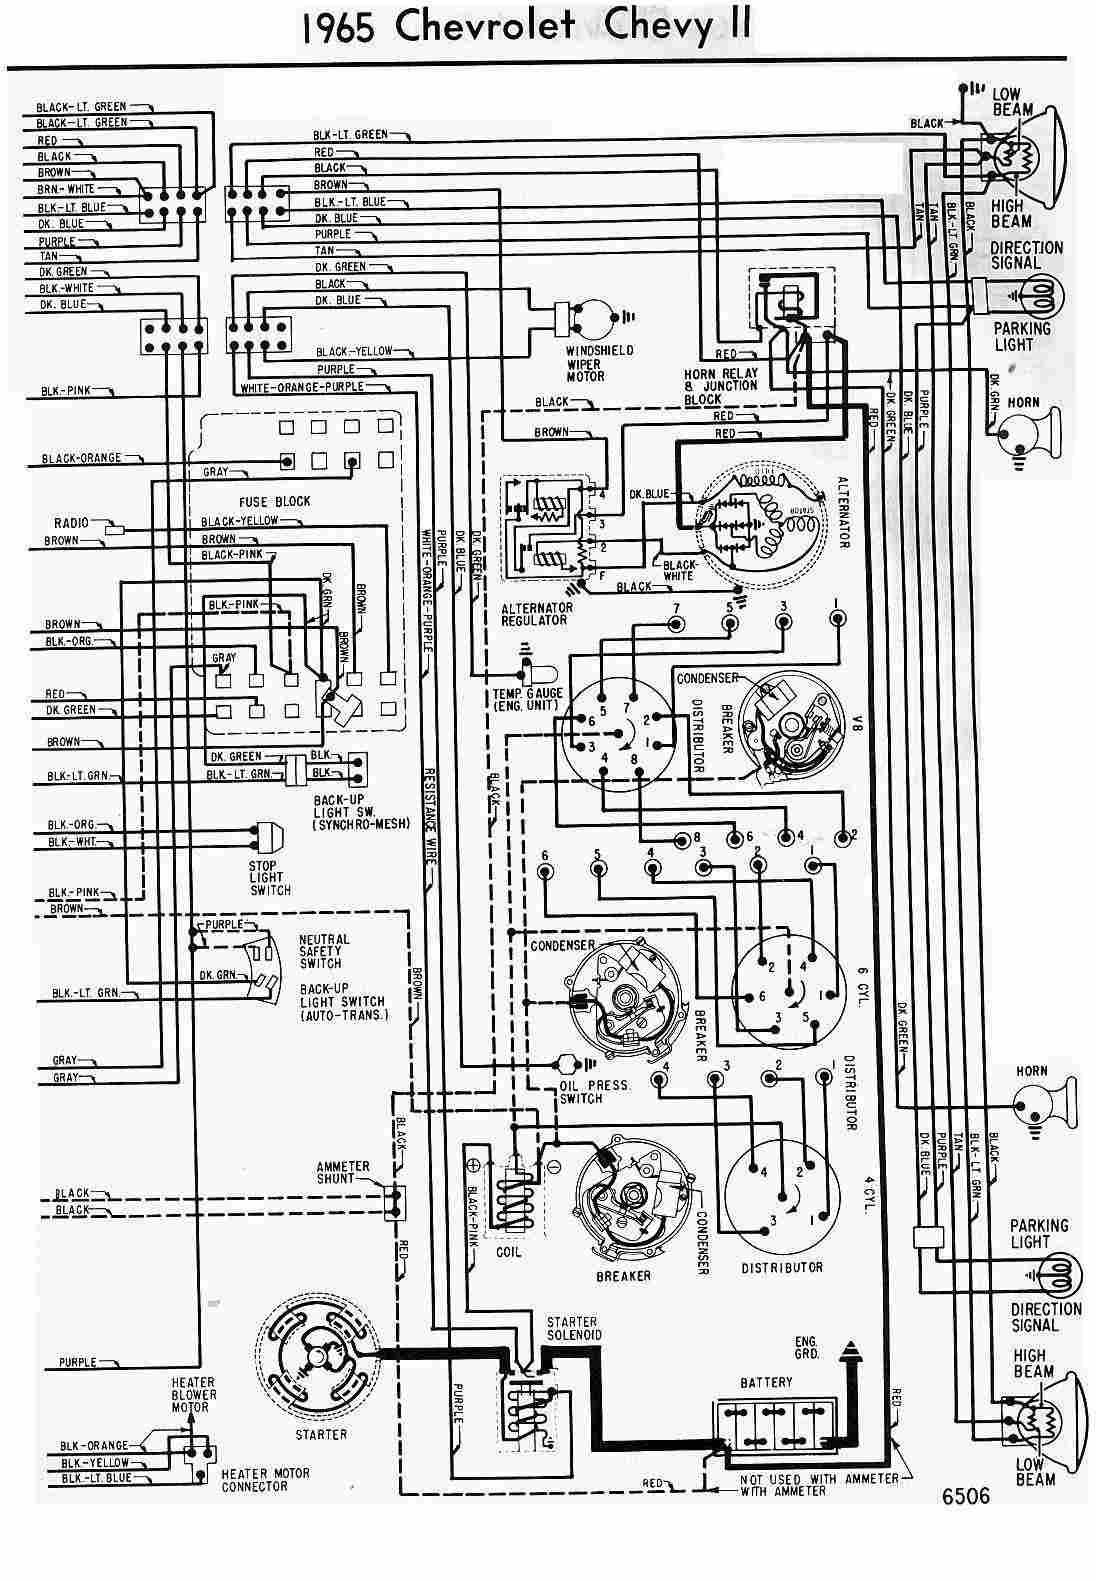 Chevrolet Car Manuals Wiring Diagrams Pdf Fault Codes Silverado Dash Diagram Download